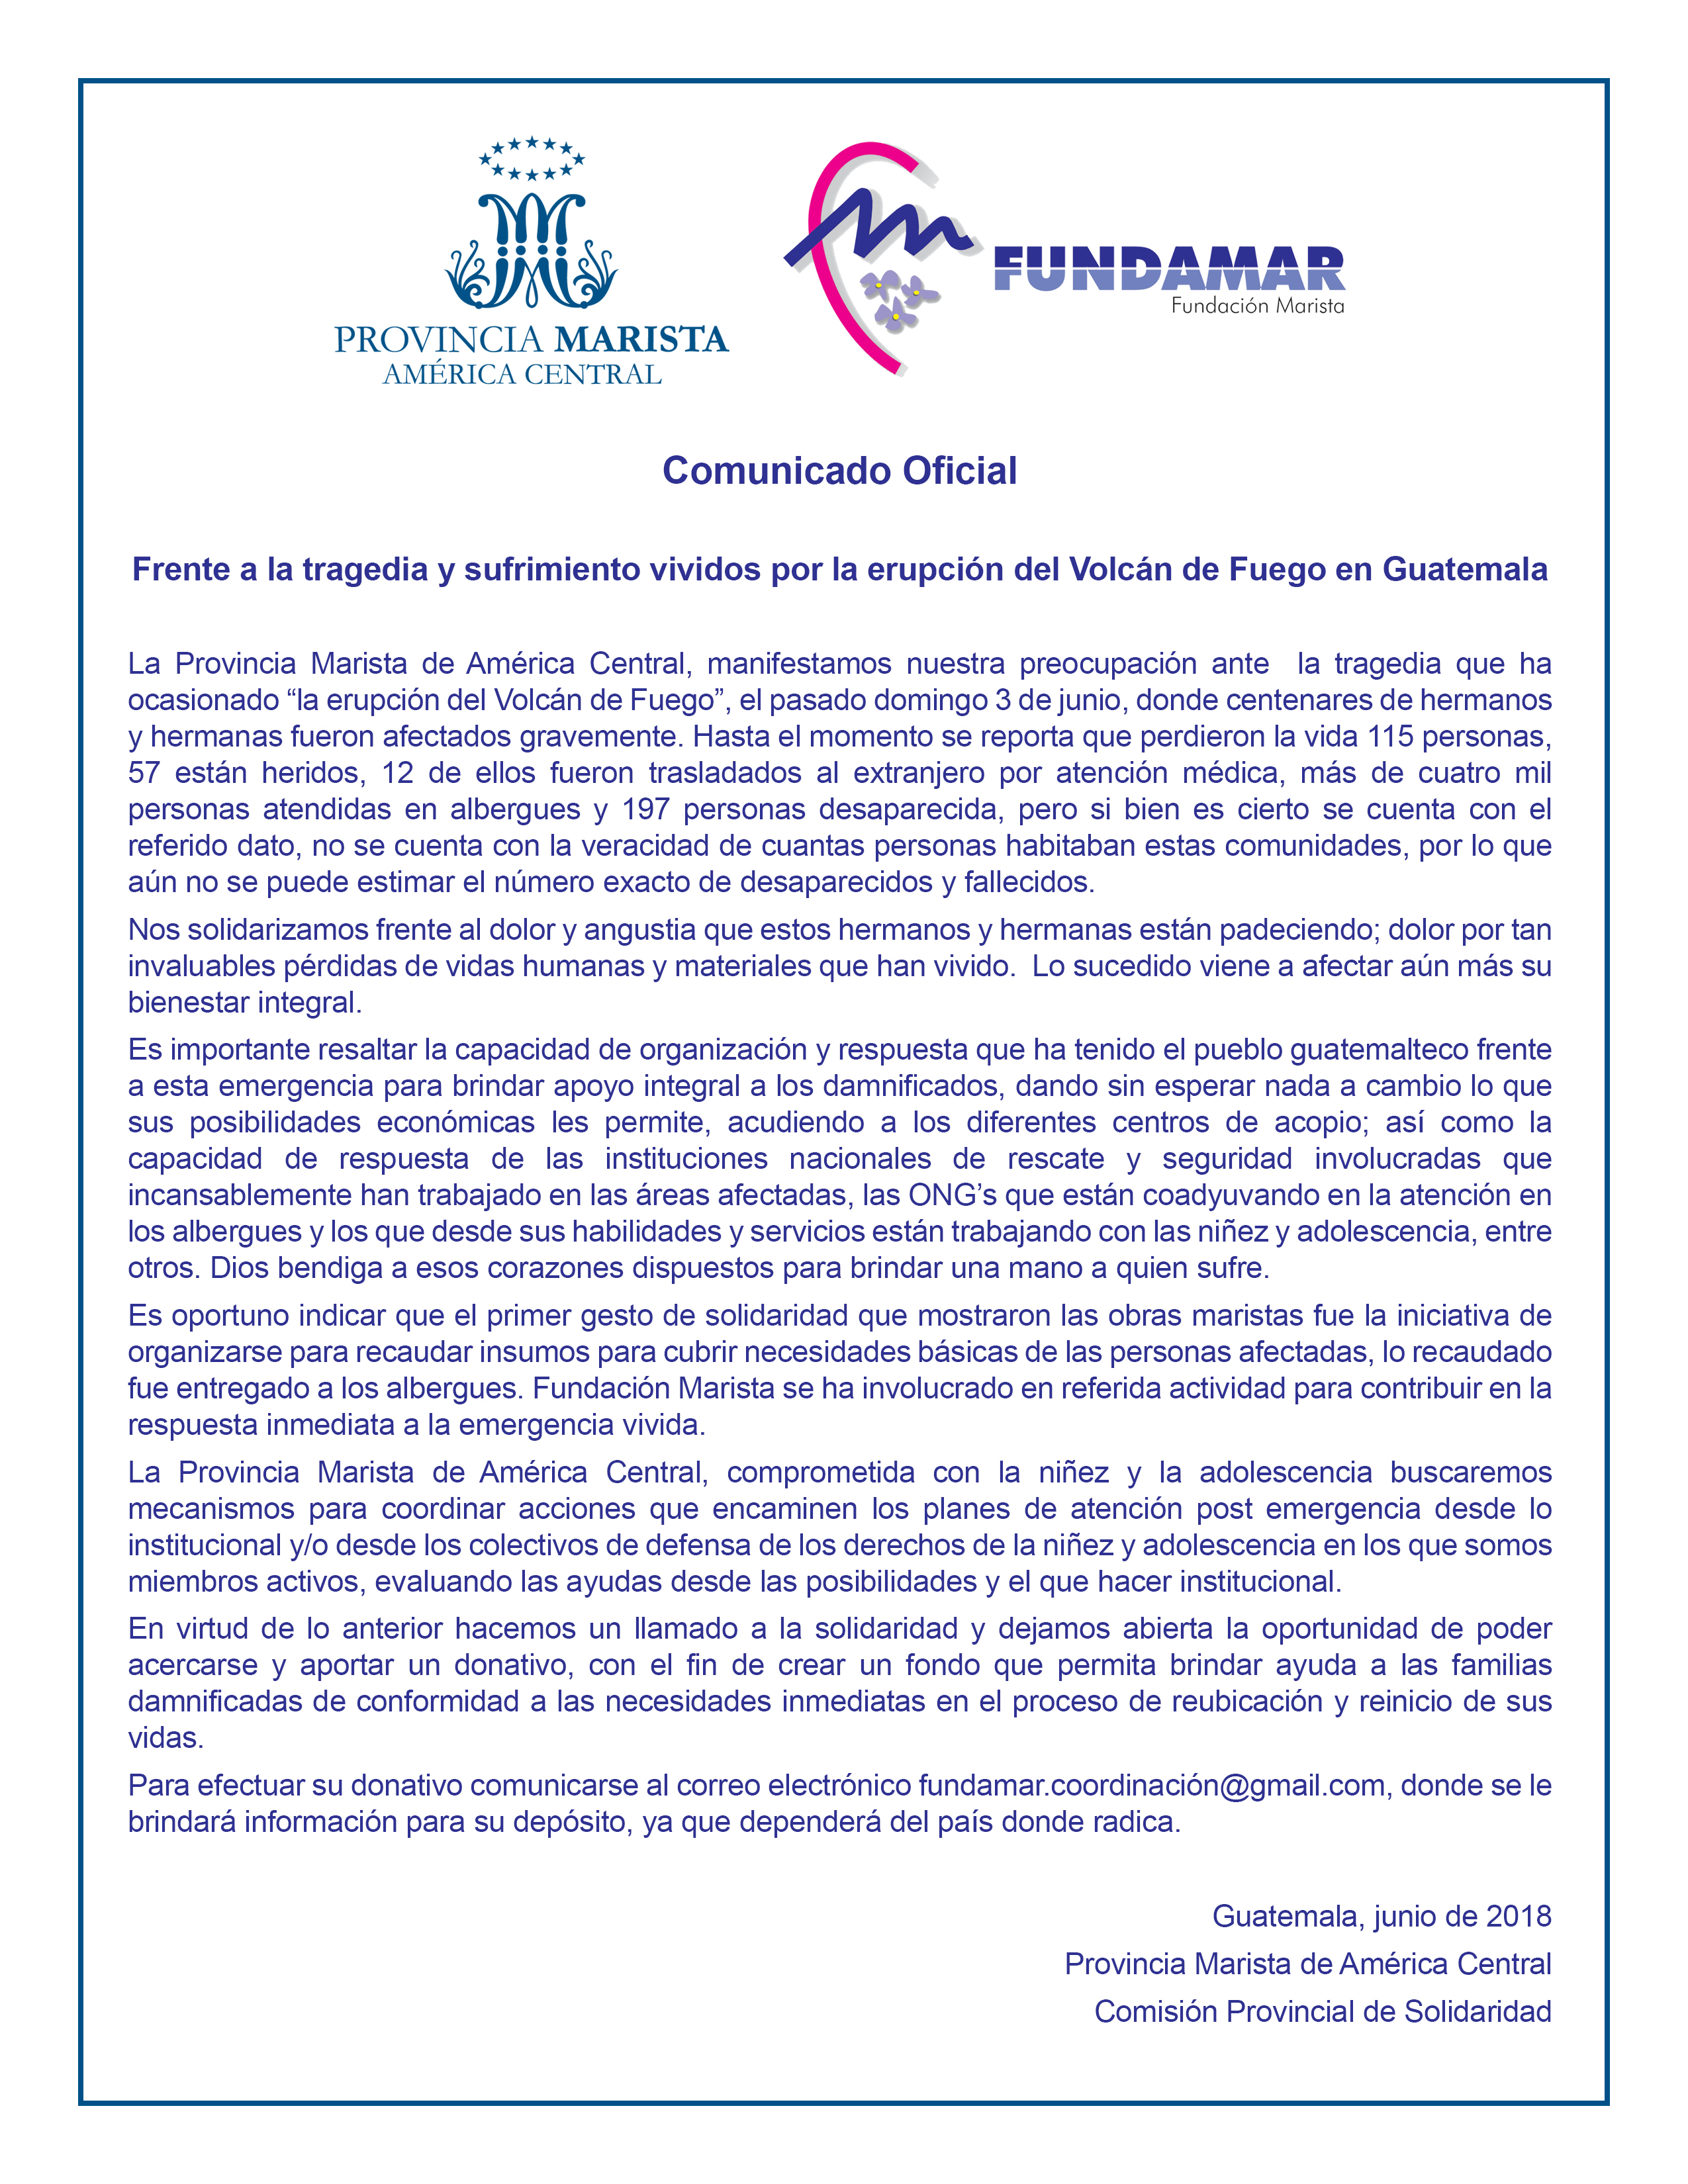 Comunicado Fundamar